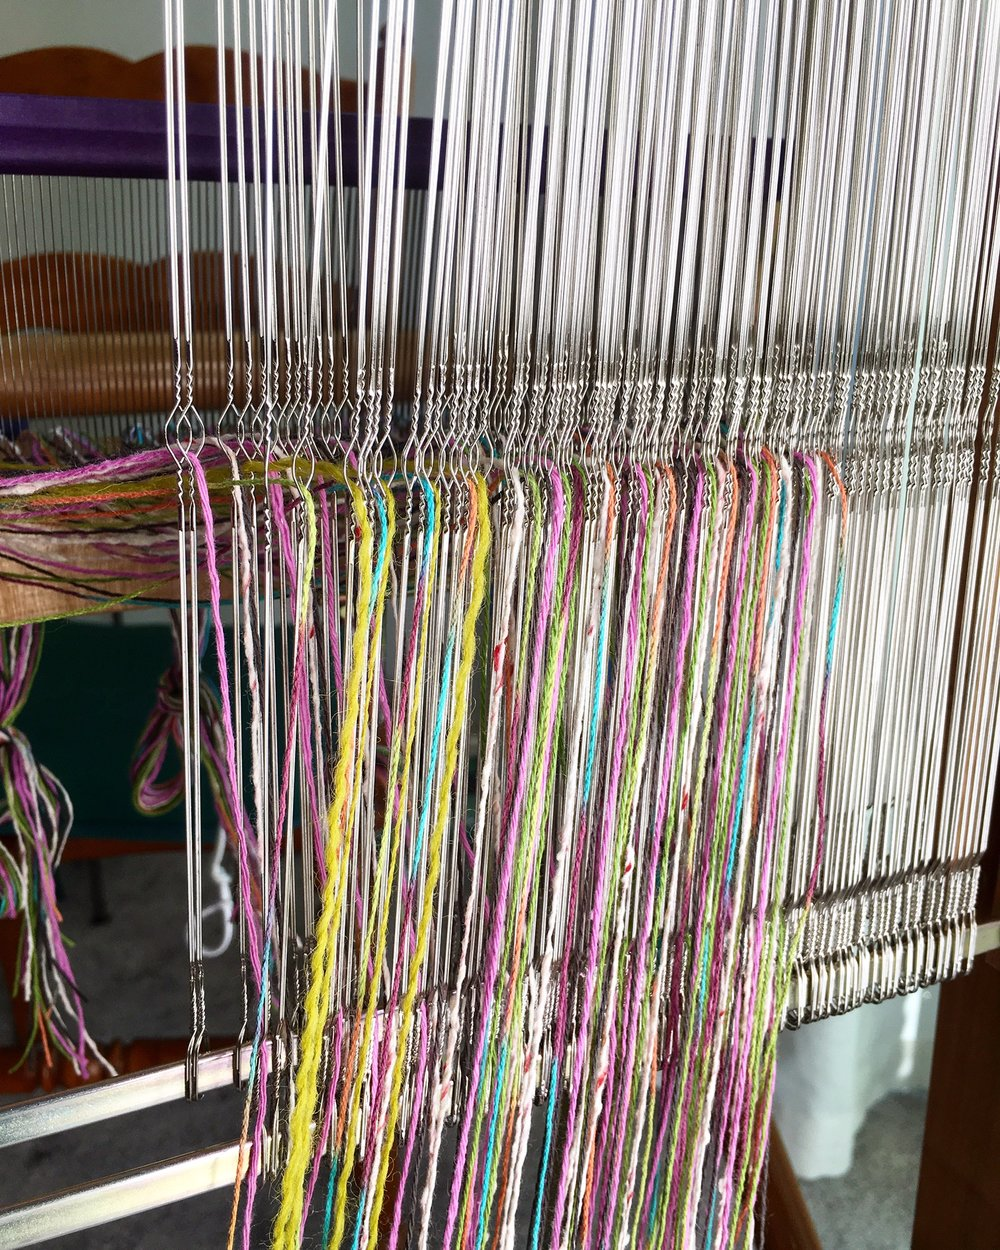 Warping the Loom - Sole concentration… no room for distraction. A meditative and satisfying process.